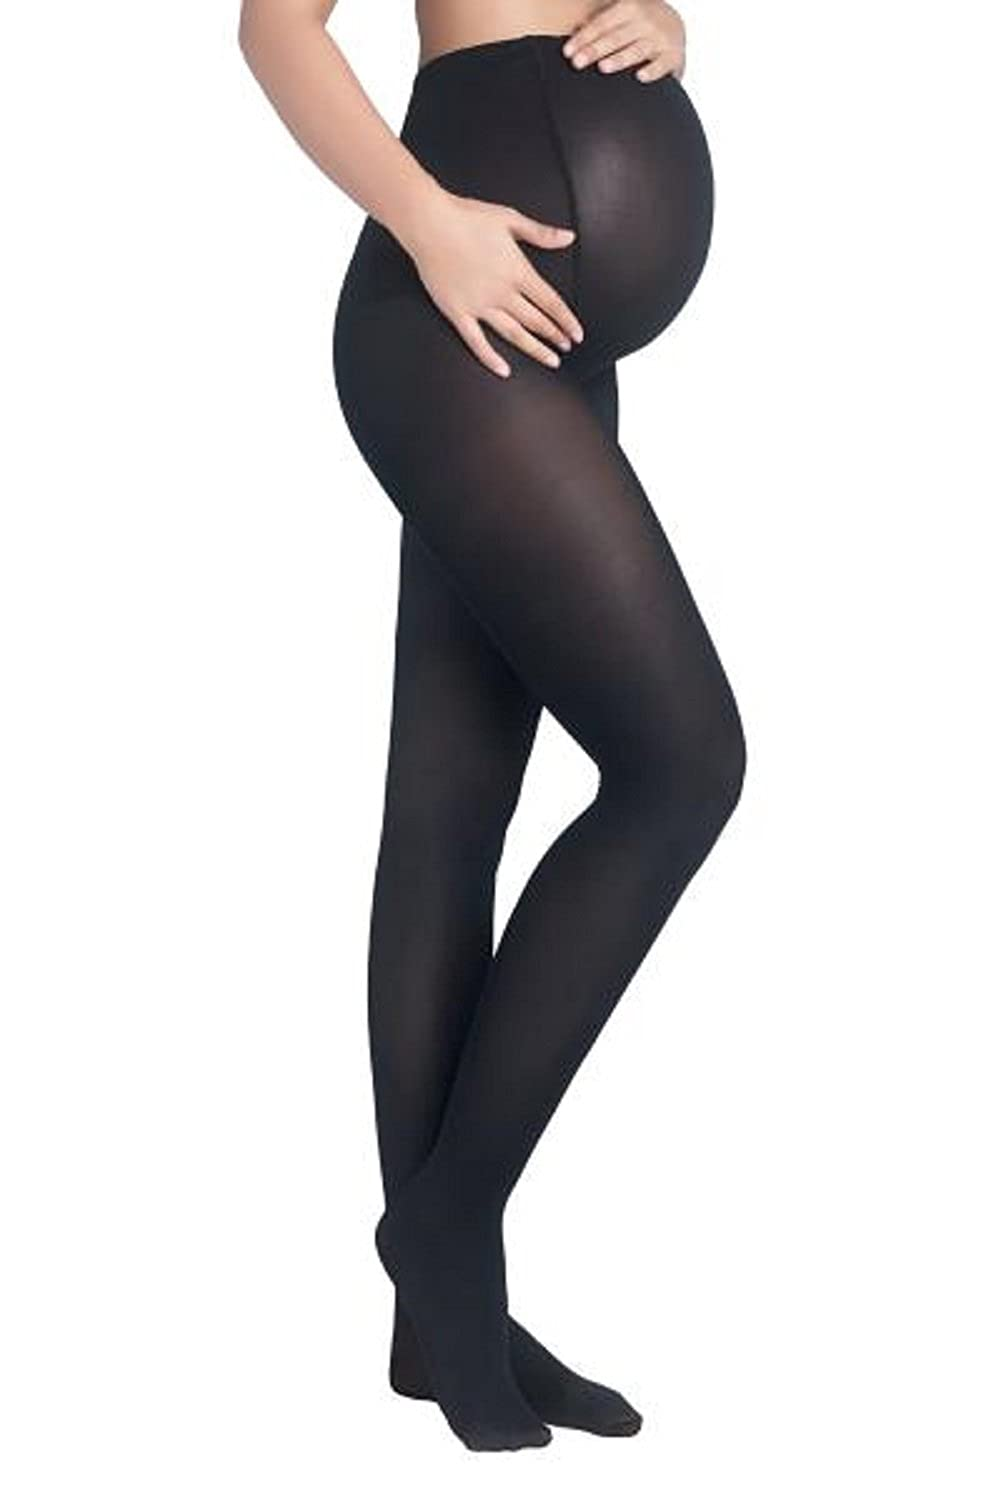 40Denier OPAQUE TIGHTS Women's Maternity Pantyhose